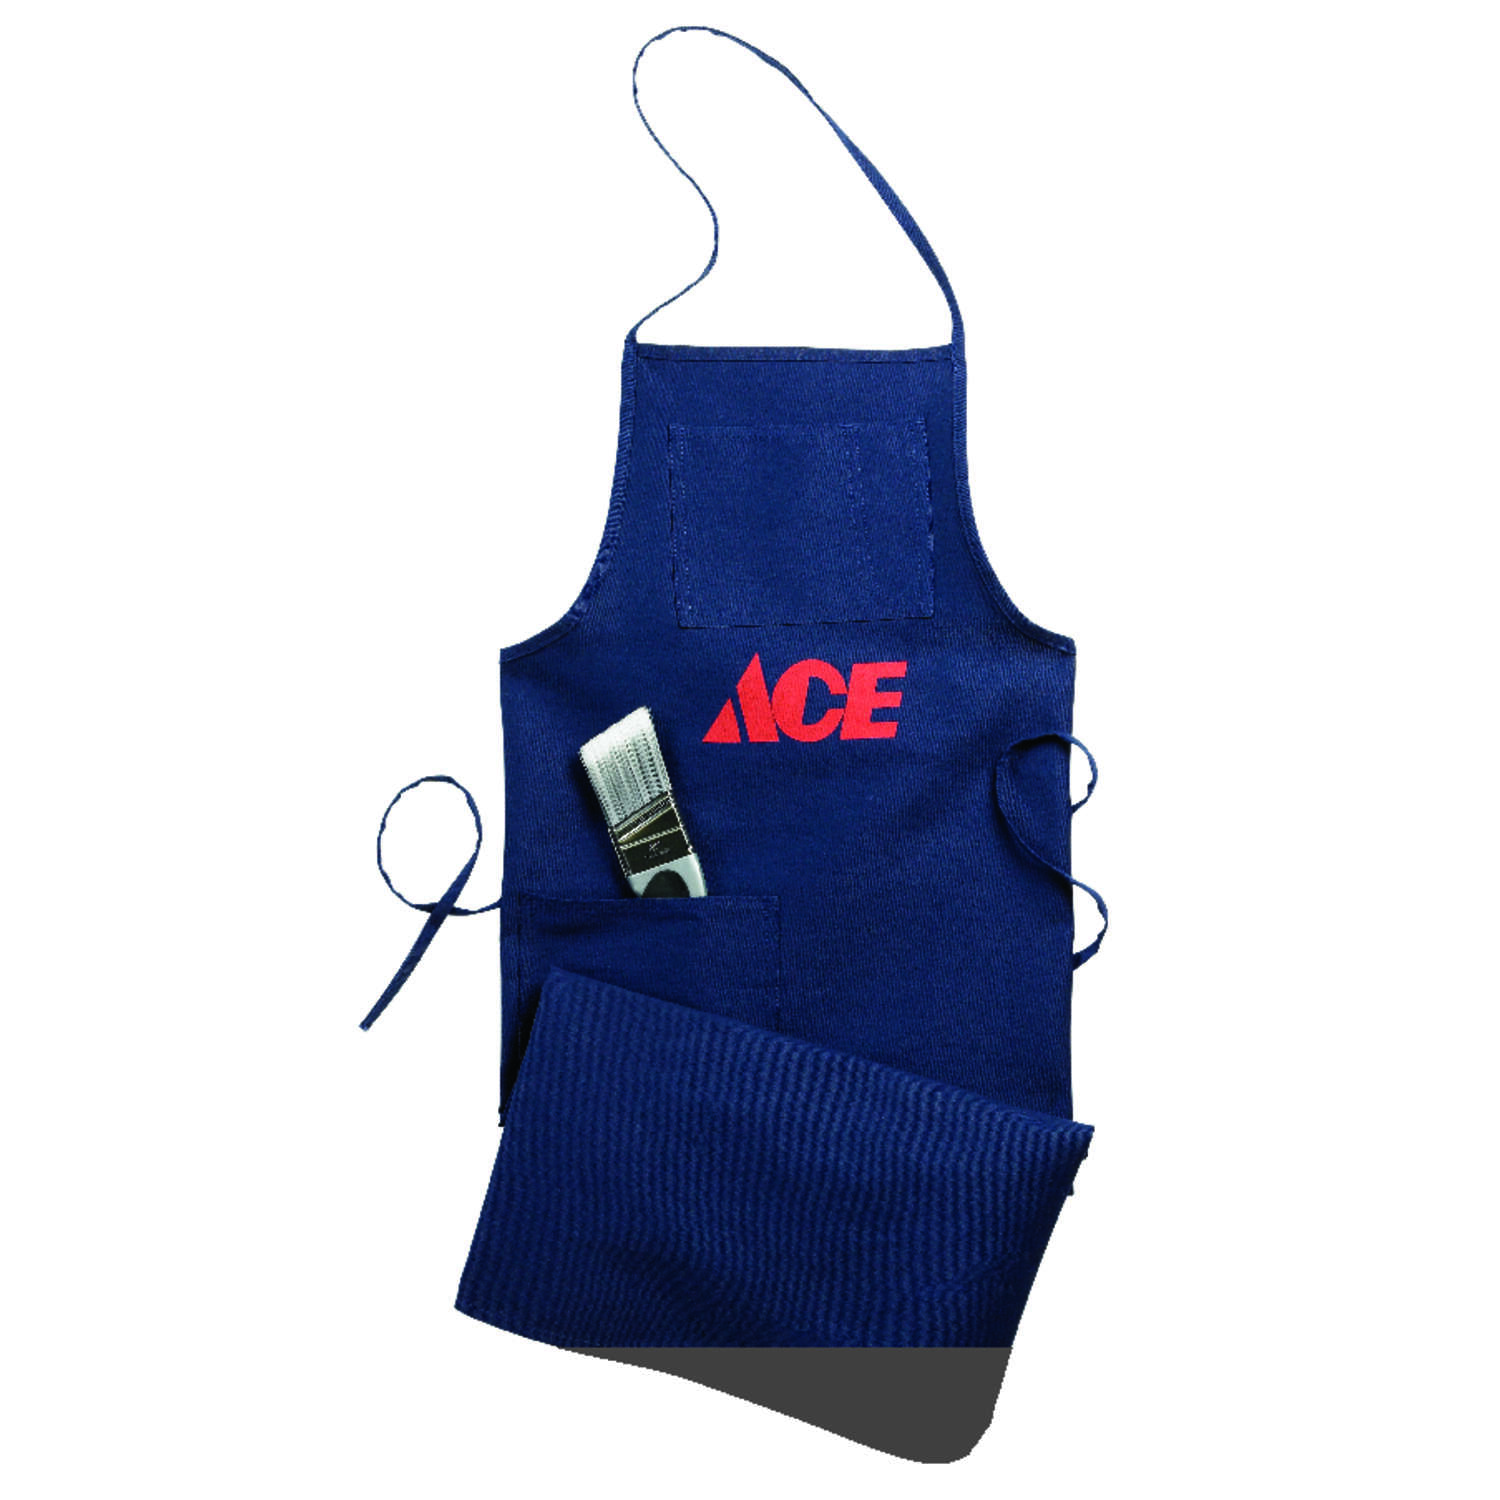 Ace Heavy Duty 1 pocket Cotton Shop Apron Blue 1 pk